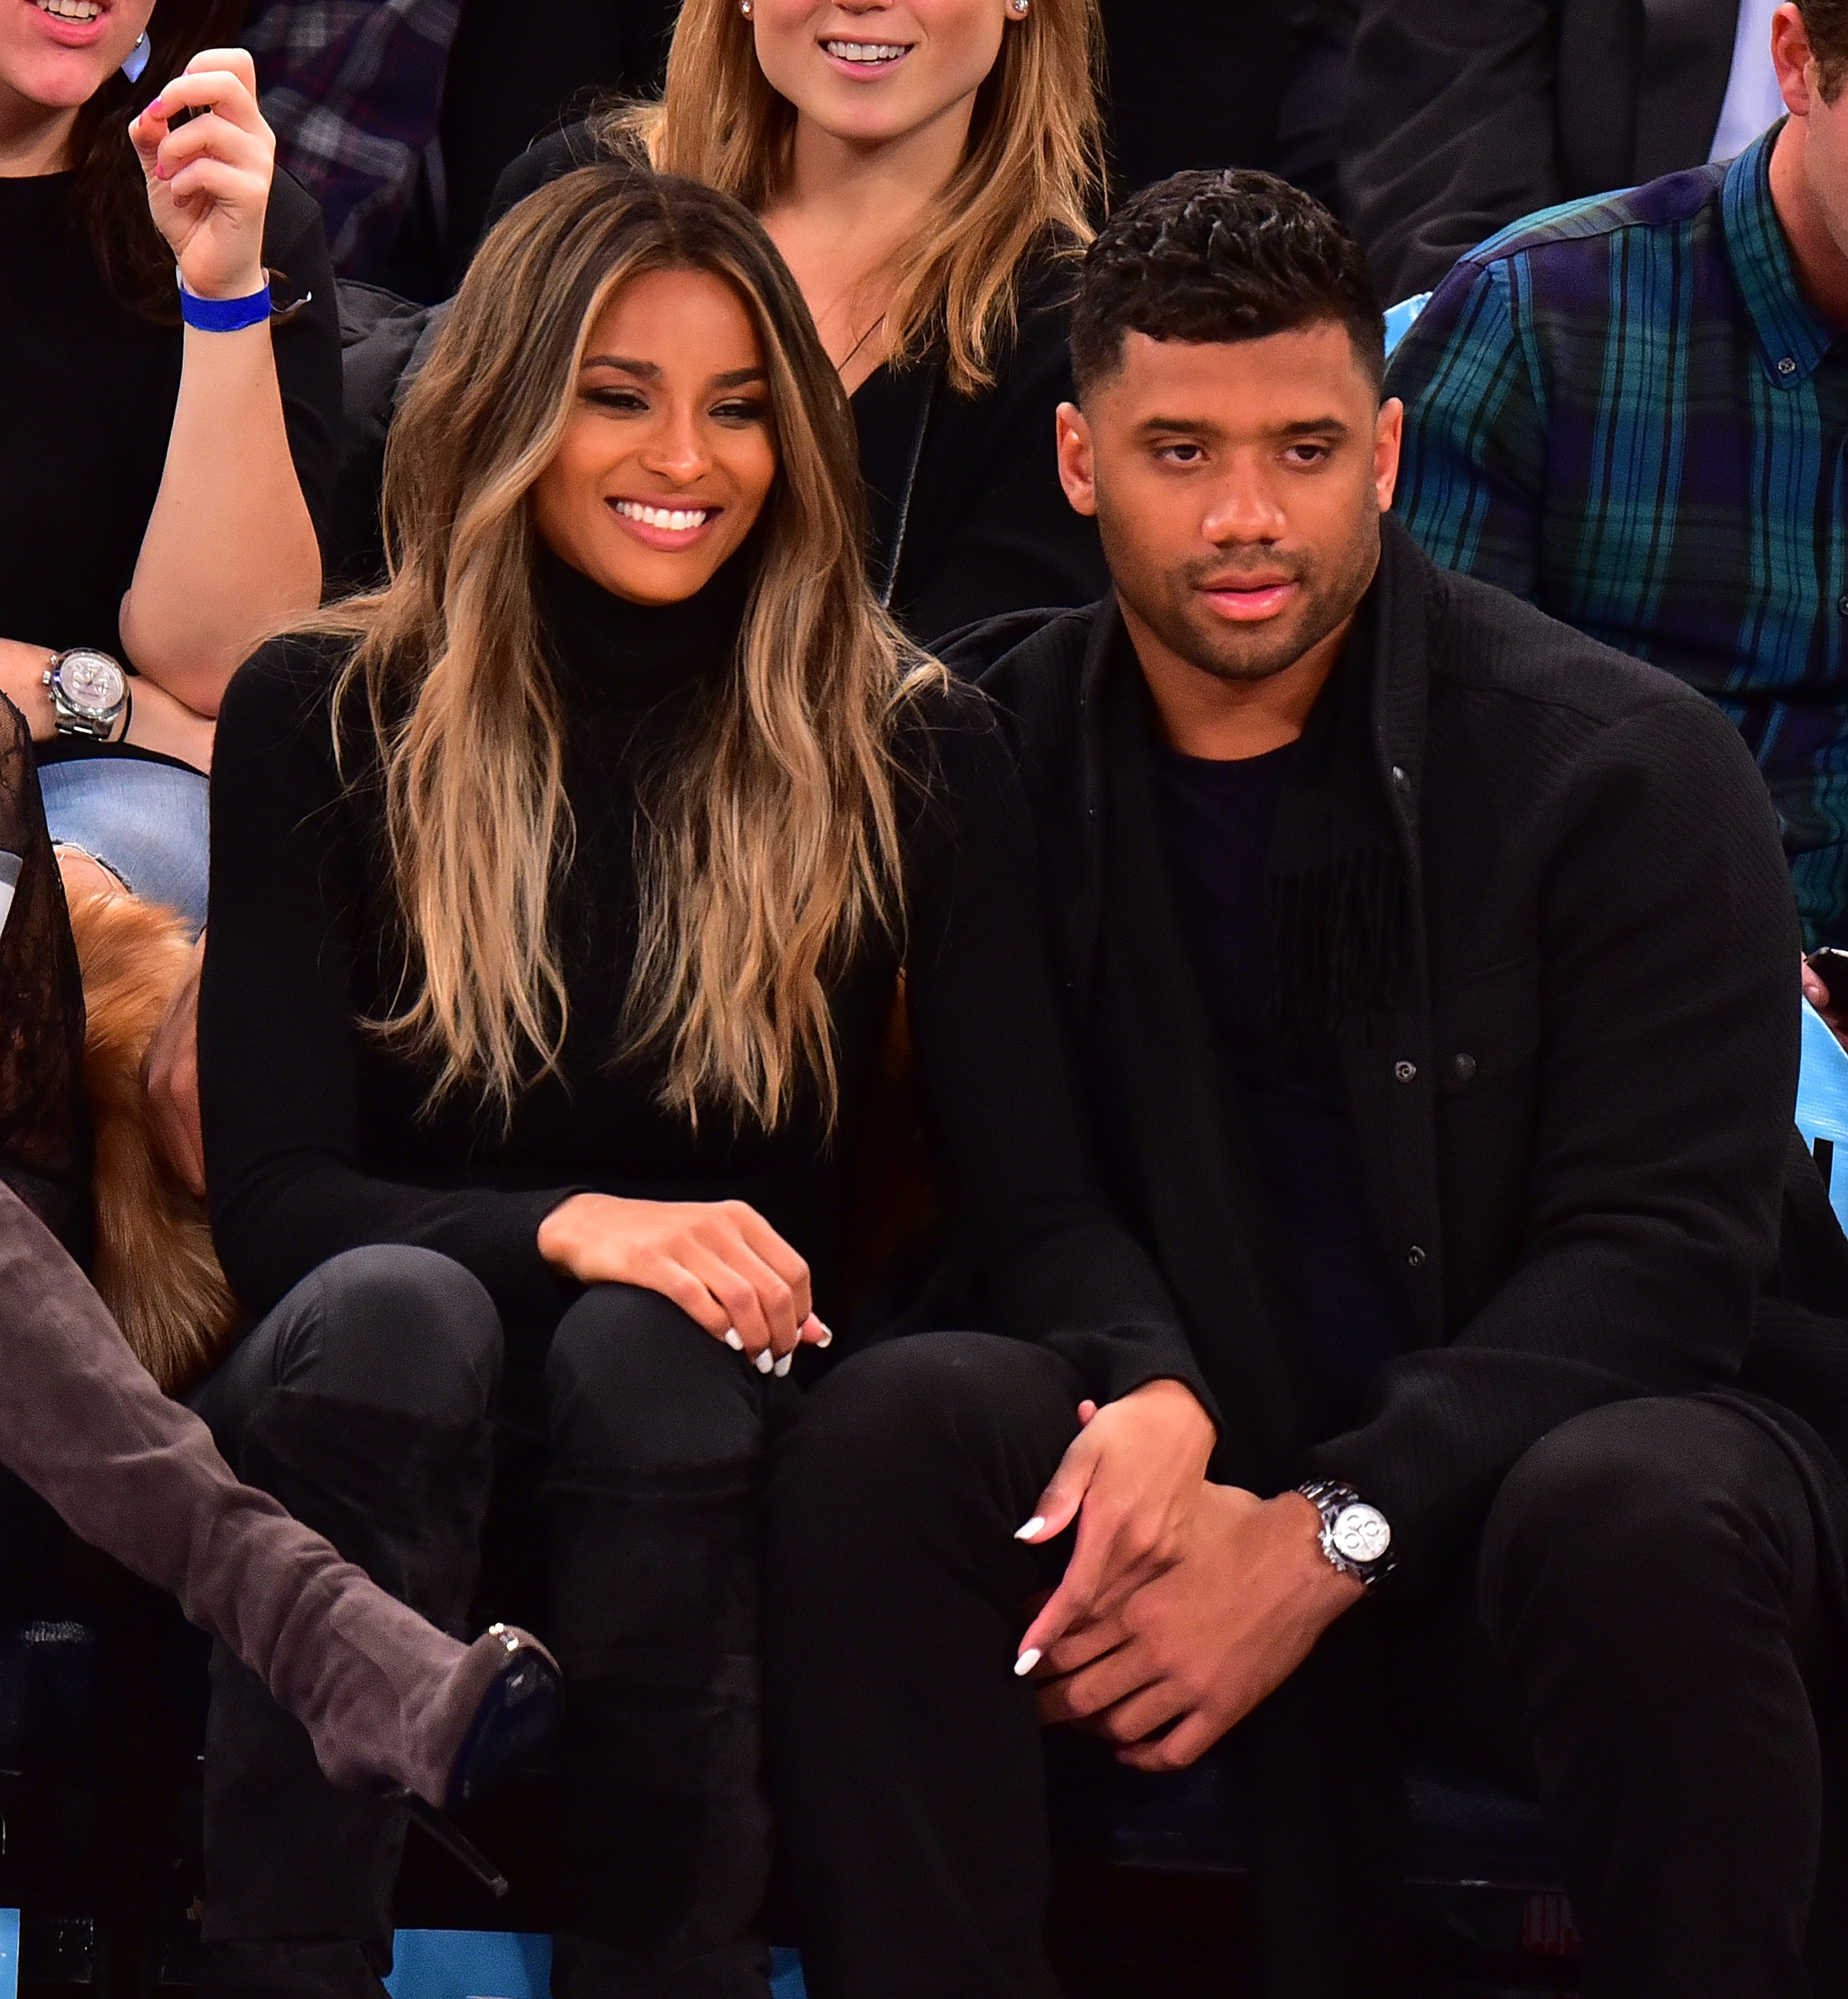 Celebrities Attend The Washington Wizards Vs New York Knicks Game - February 09, 2016